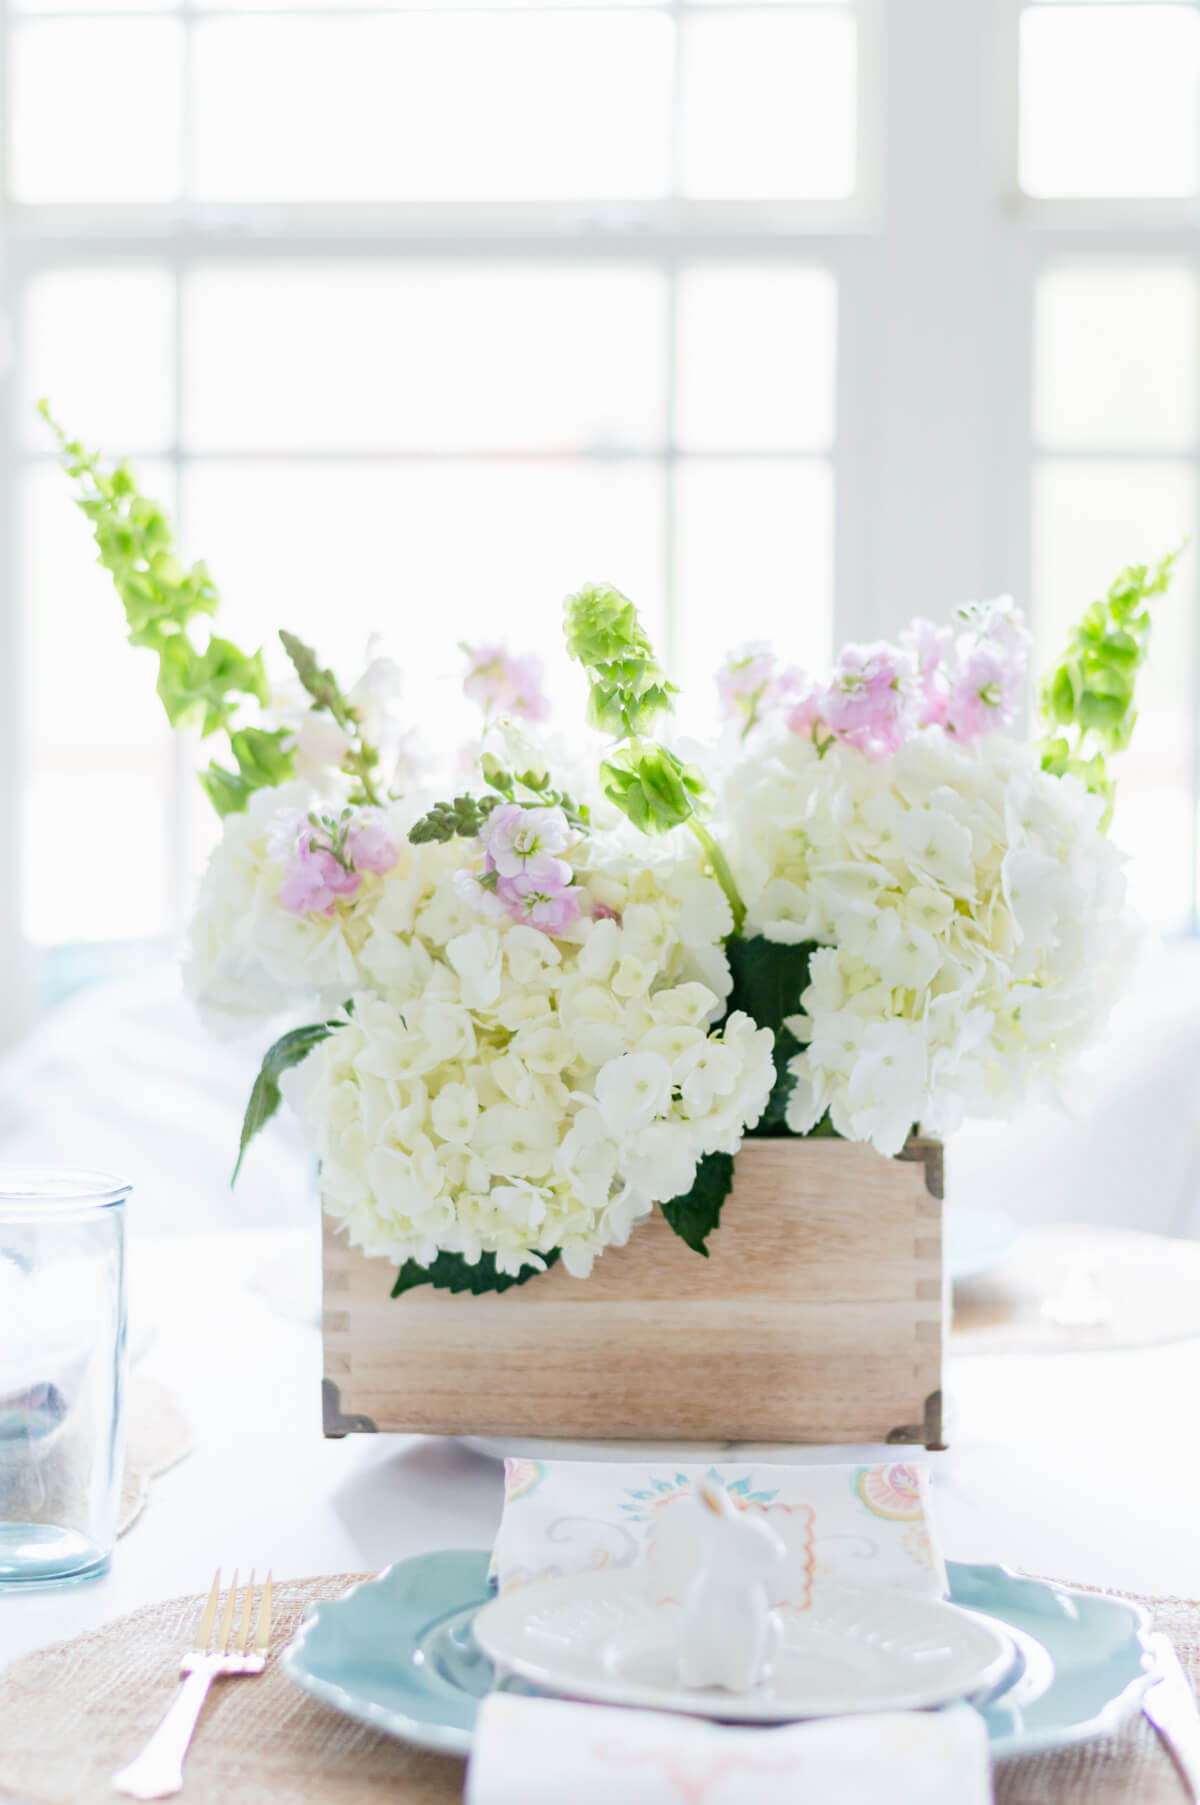 Easy DIY spring flower arrangement made with grocery store flowers hydrangea! Great for Easter tablescapes and spring decor!